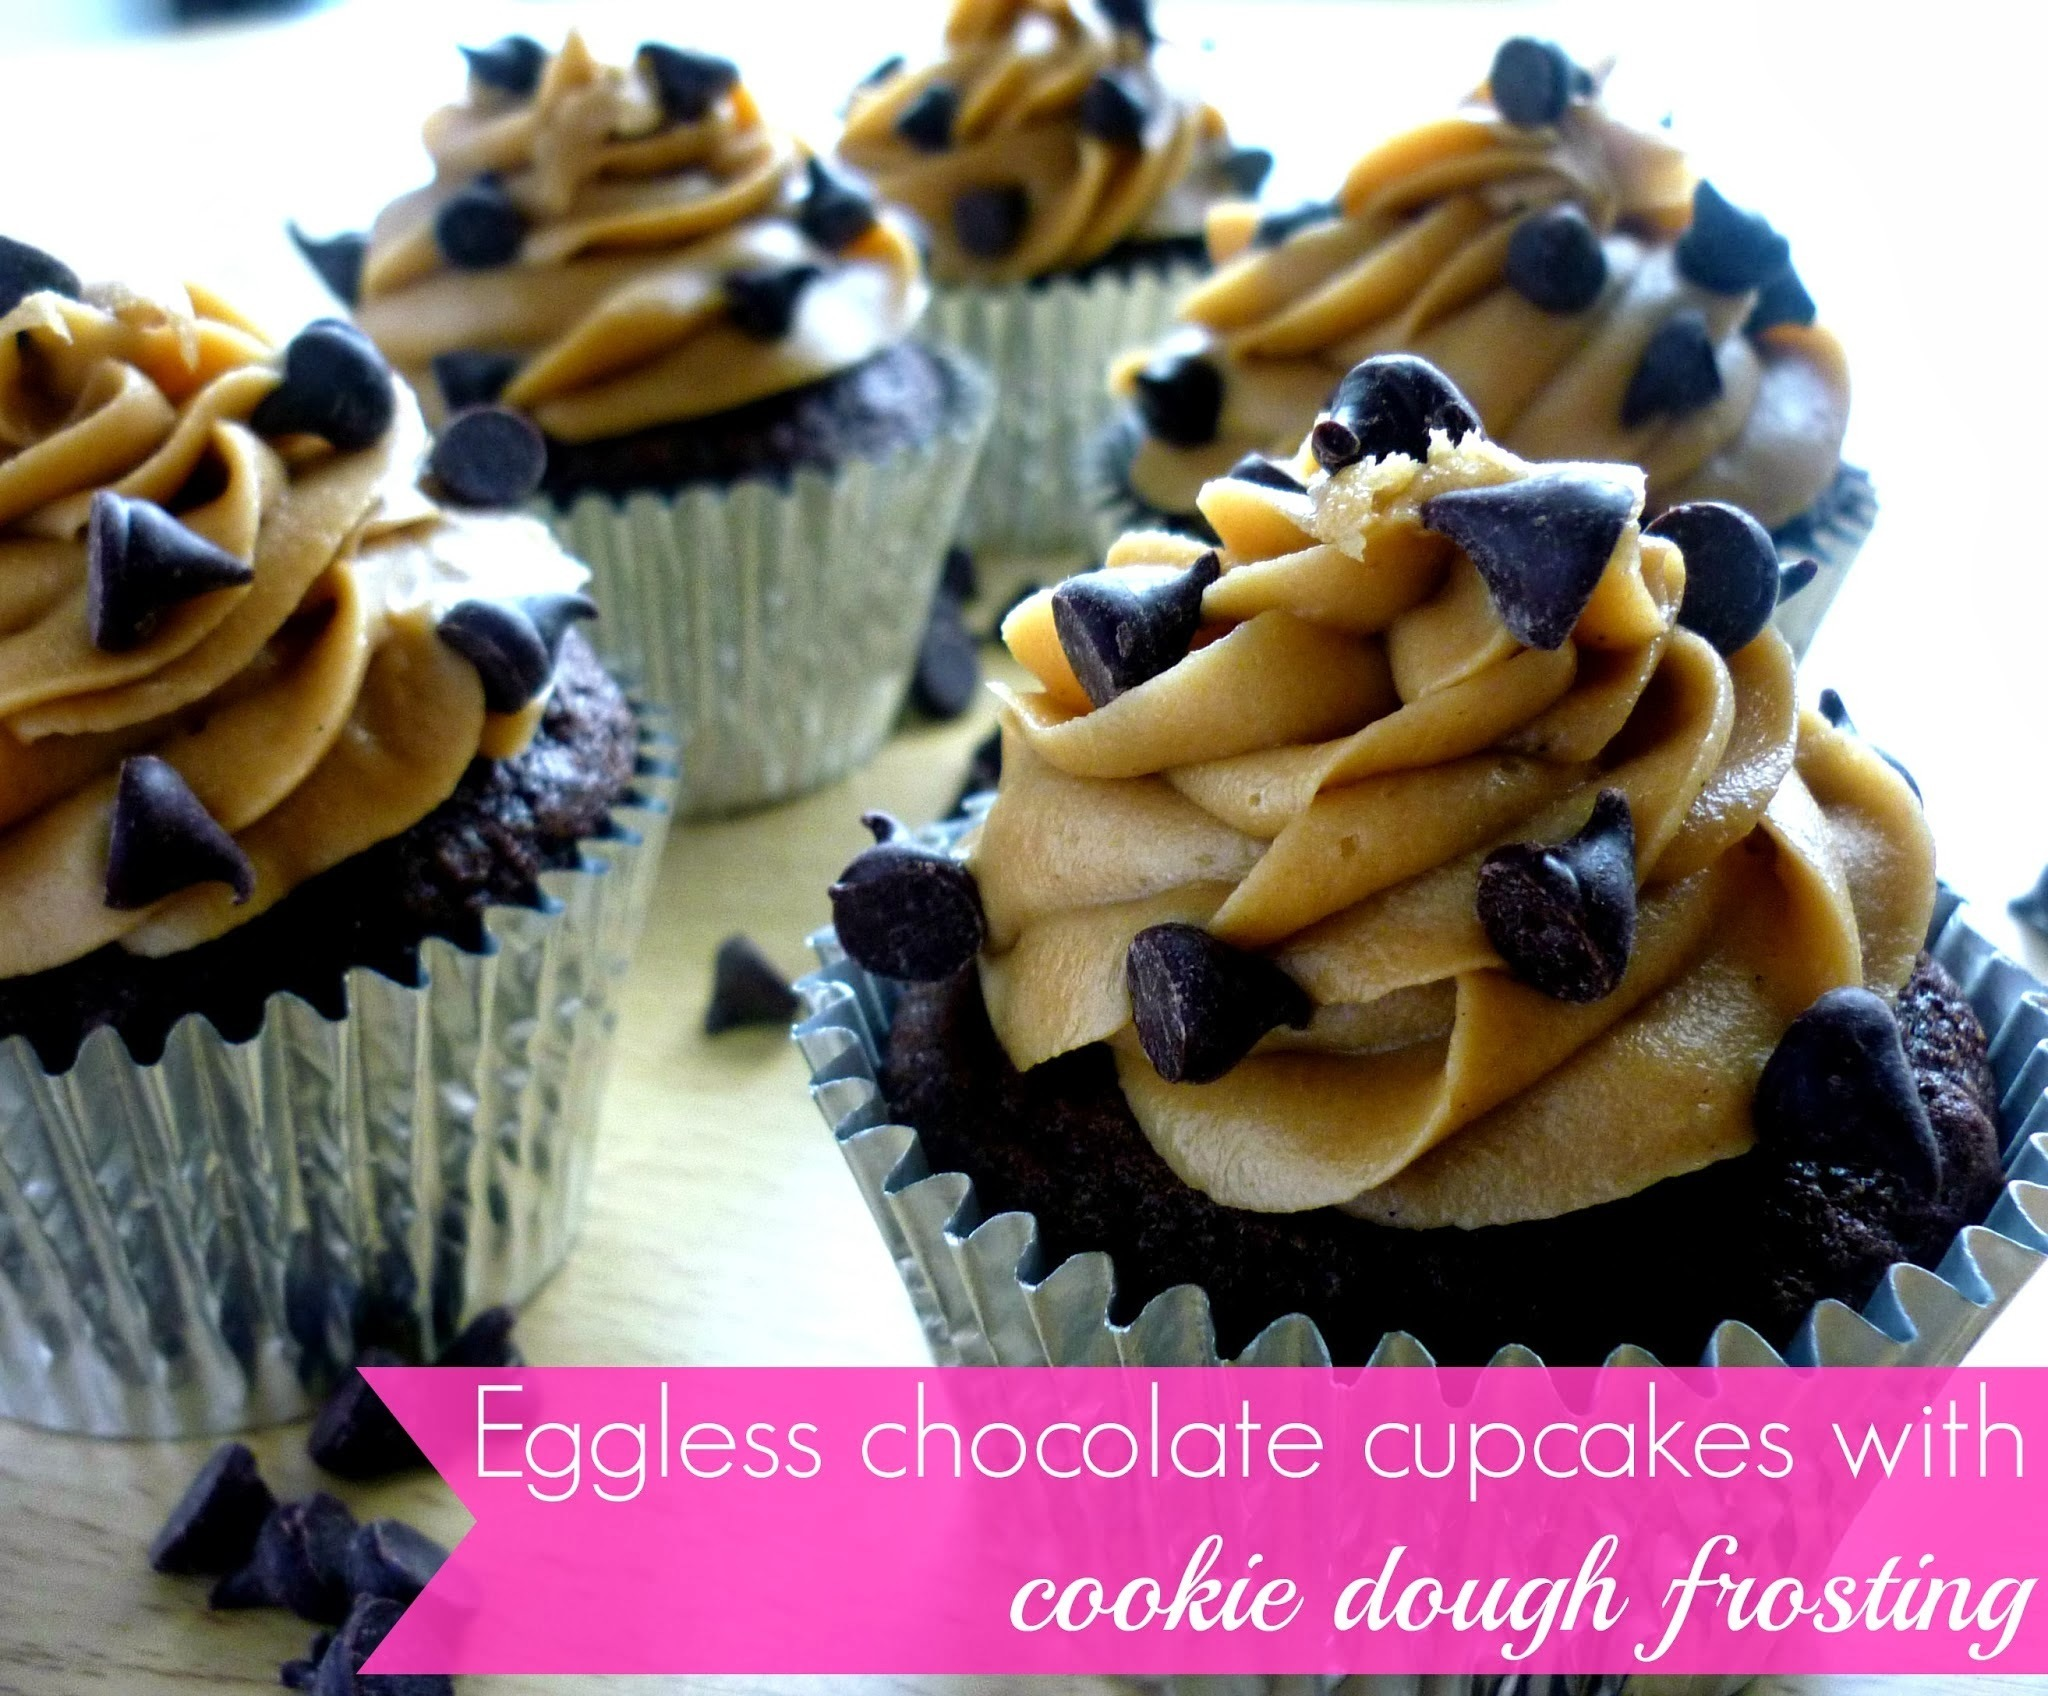 Eggless chocolate cupcakes with cookie dough frosting